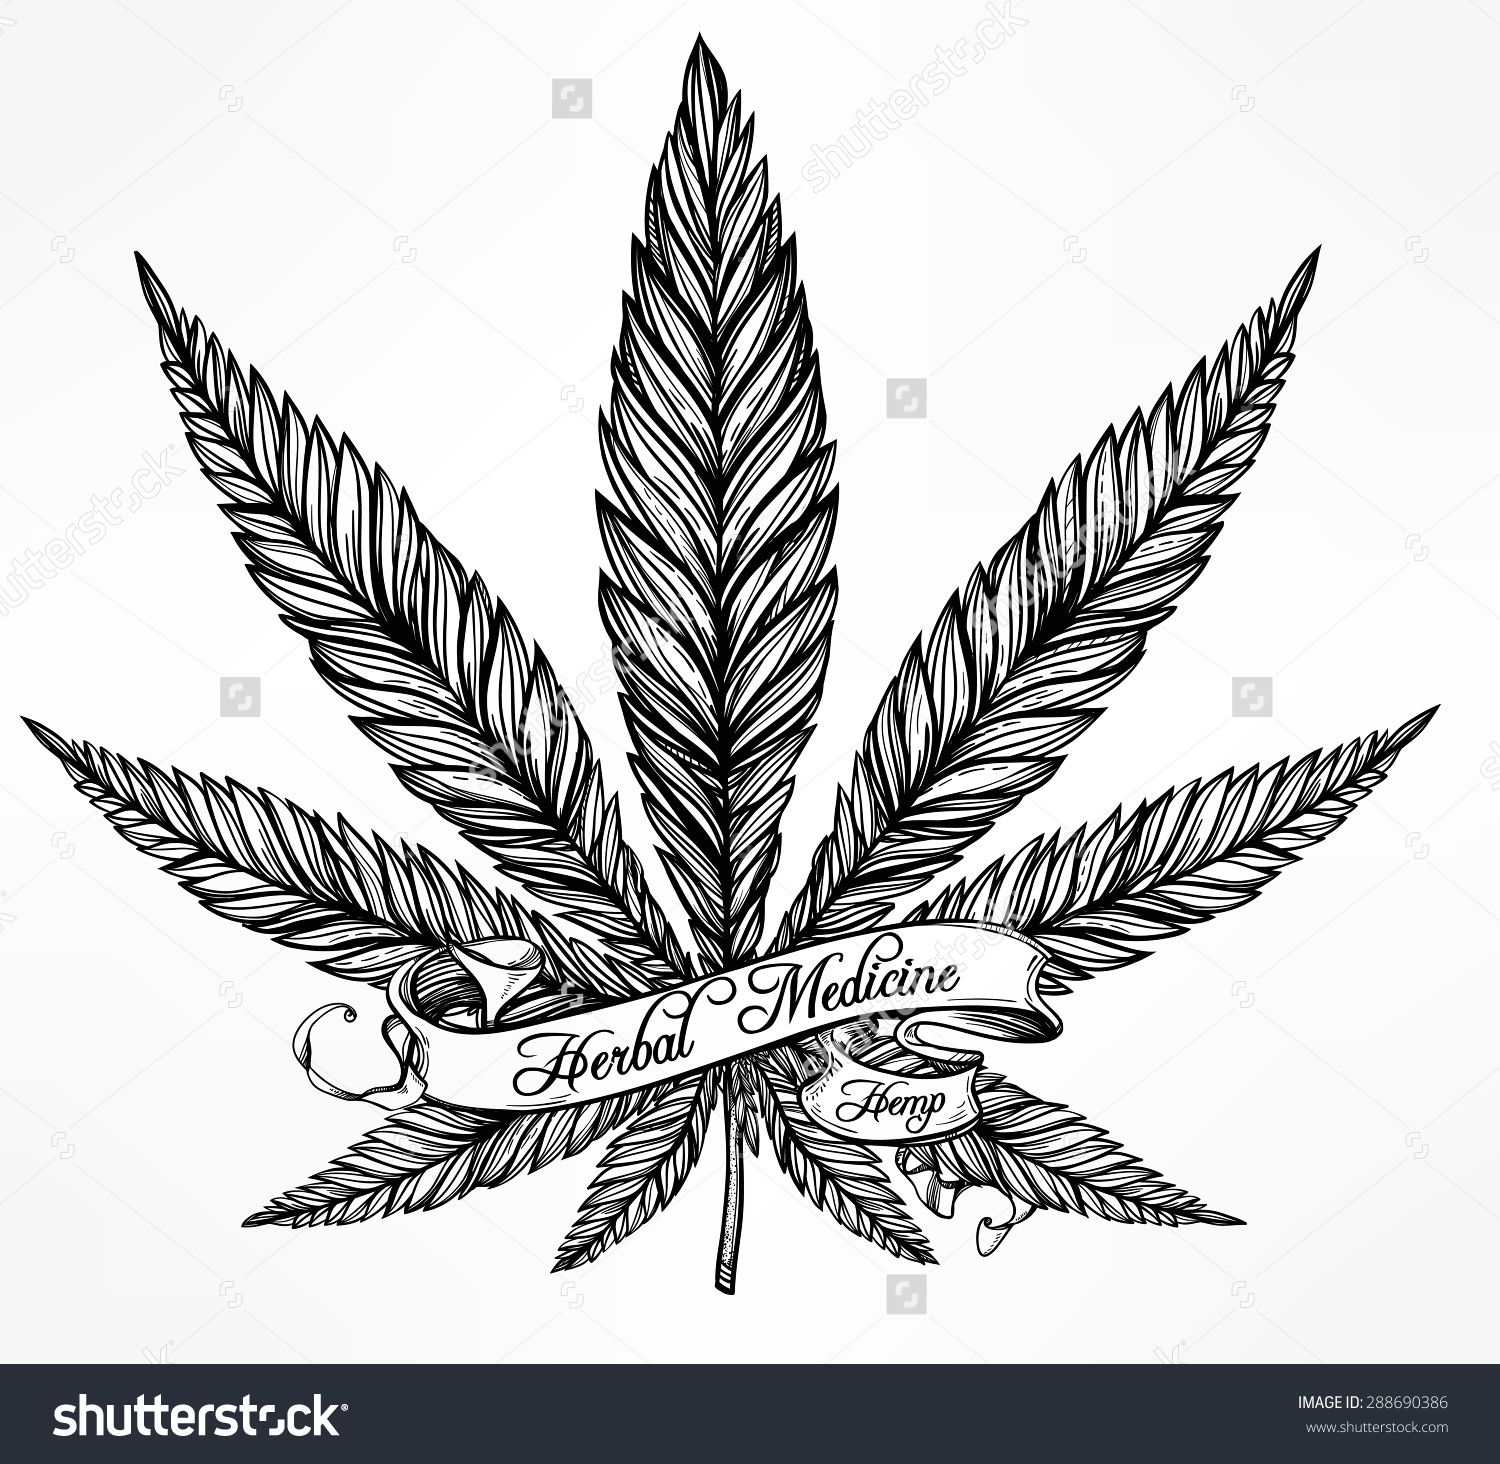 stock-vector-hemp-cannabis-leaf-in-vintage-linear-style - 574.7KB